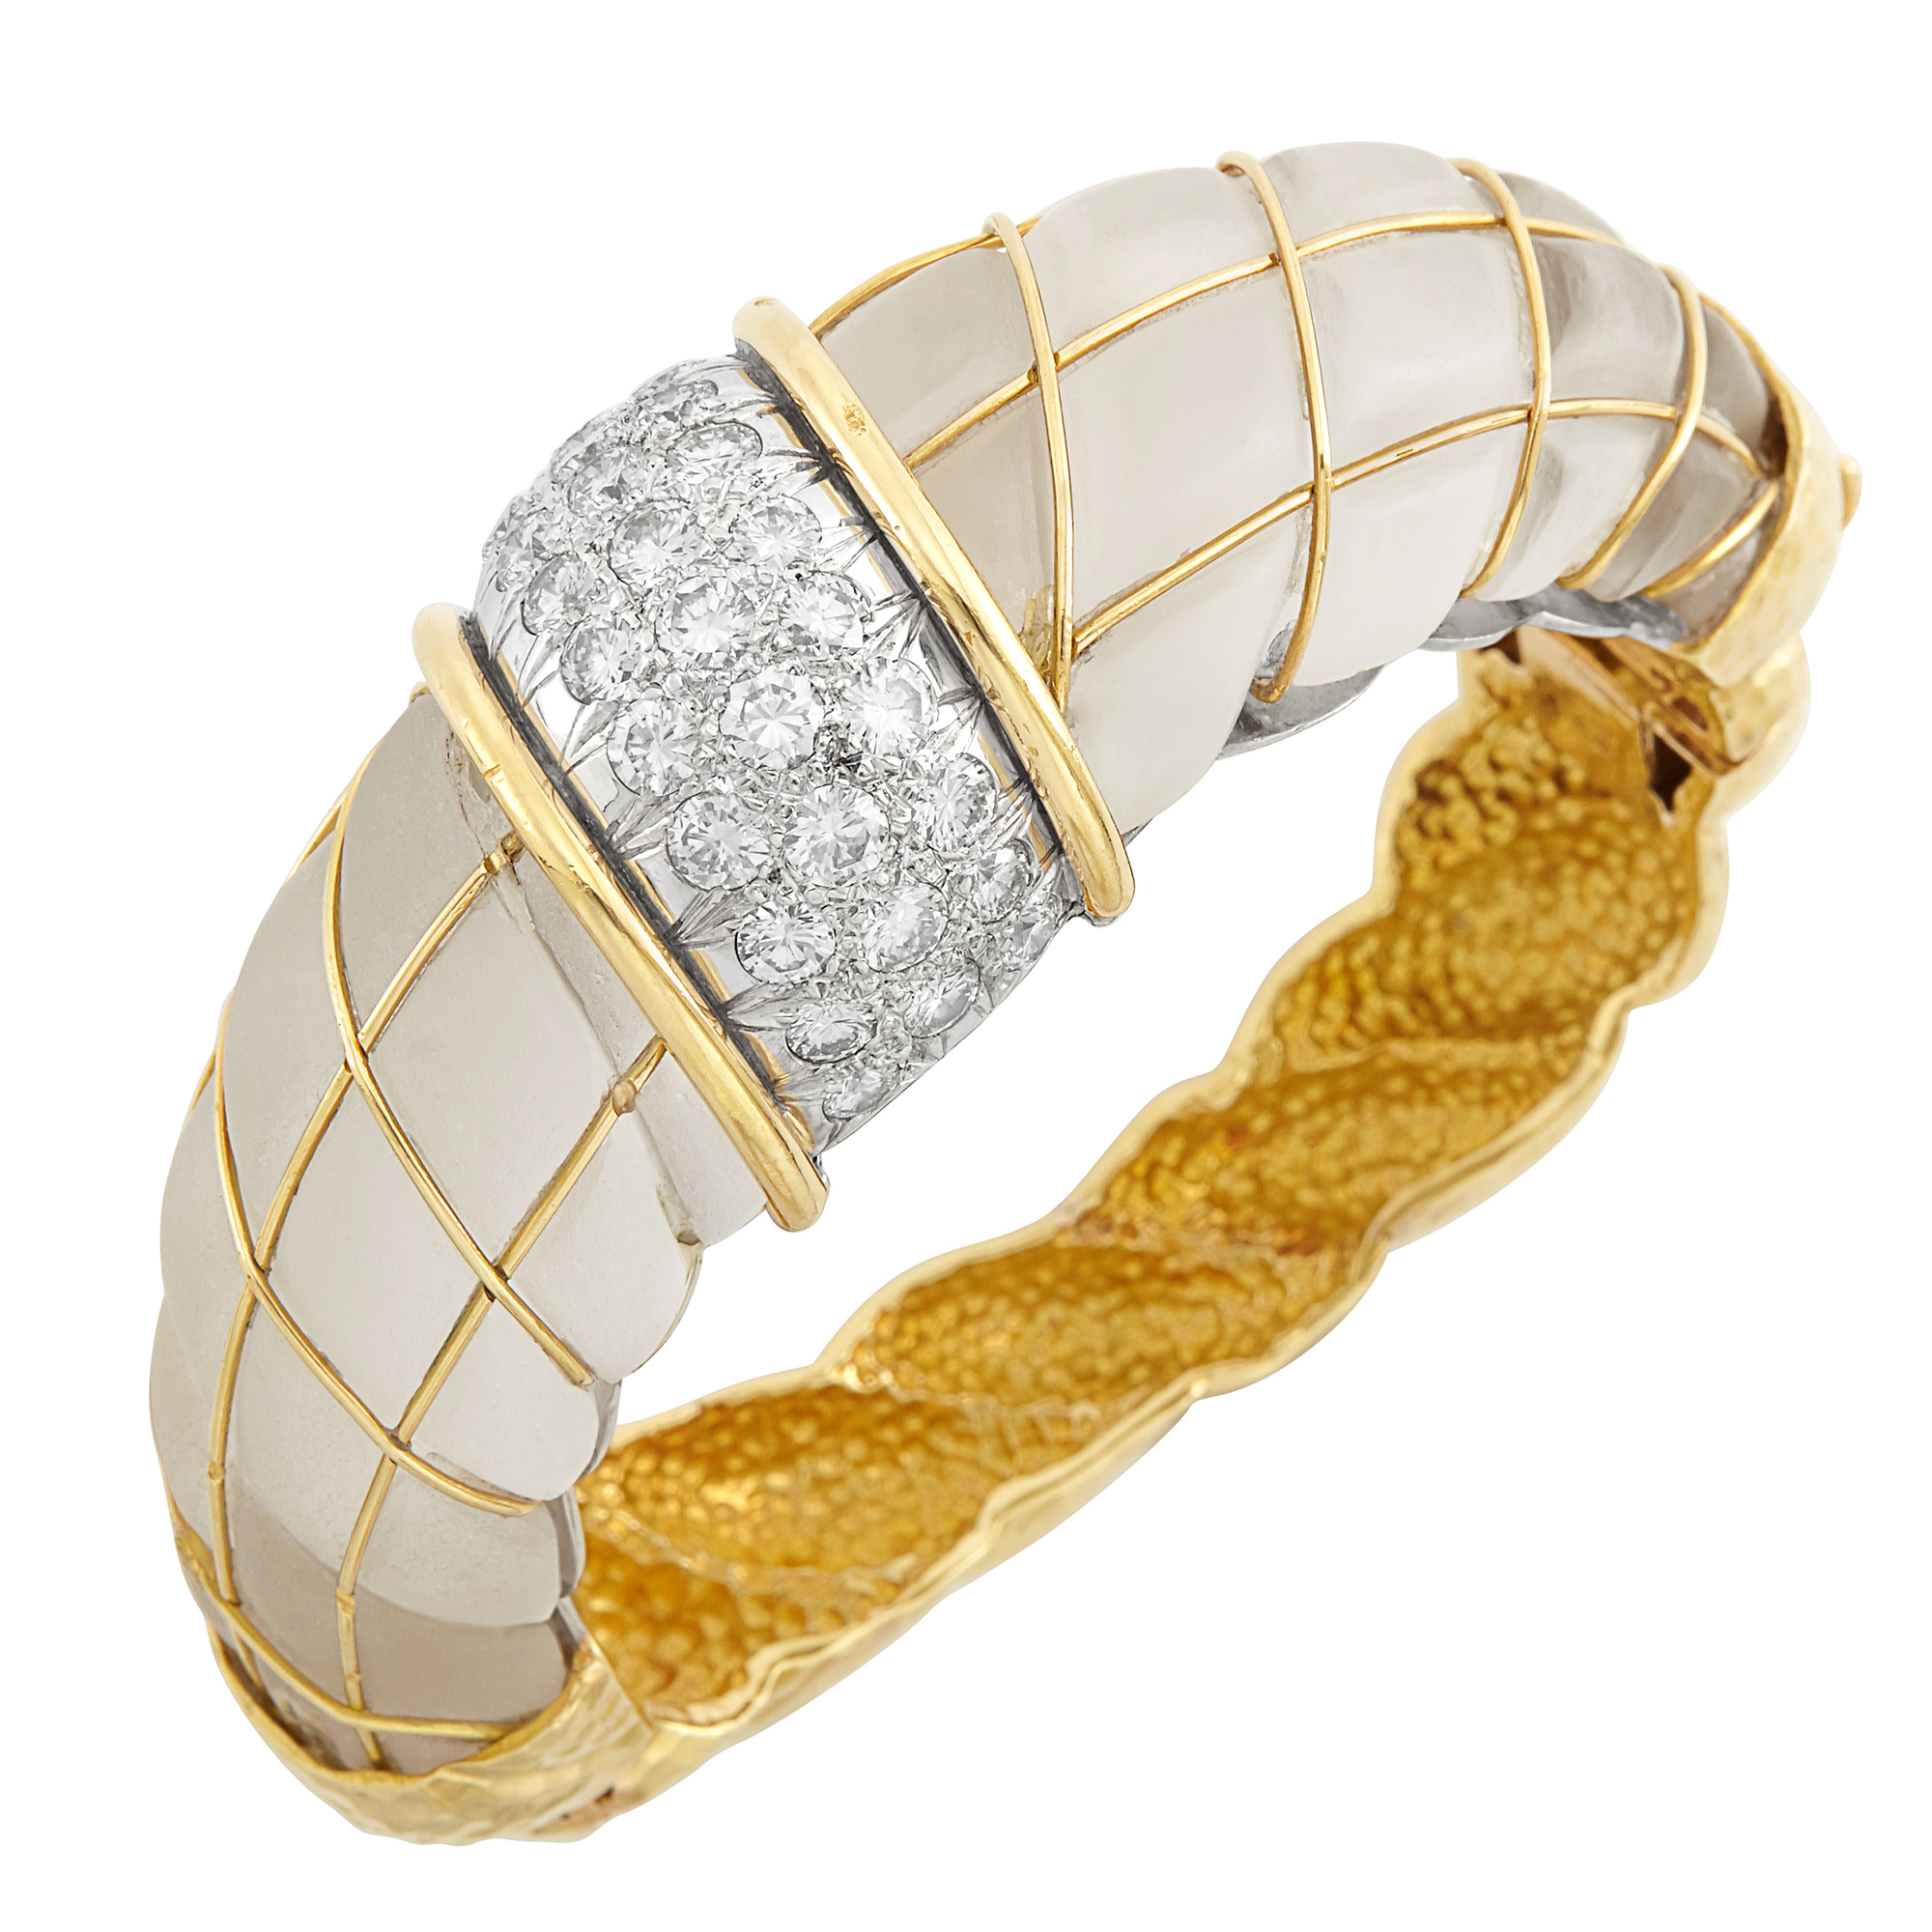 Lot image - Two-Color Gold, Frosted Rock Crystal and Diamond Bombé Bangle Bracelet